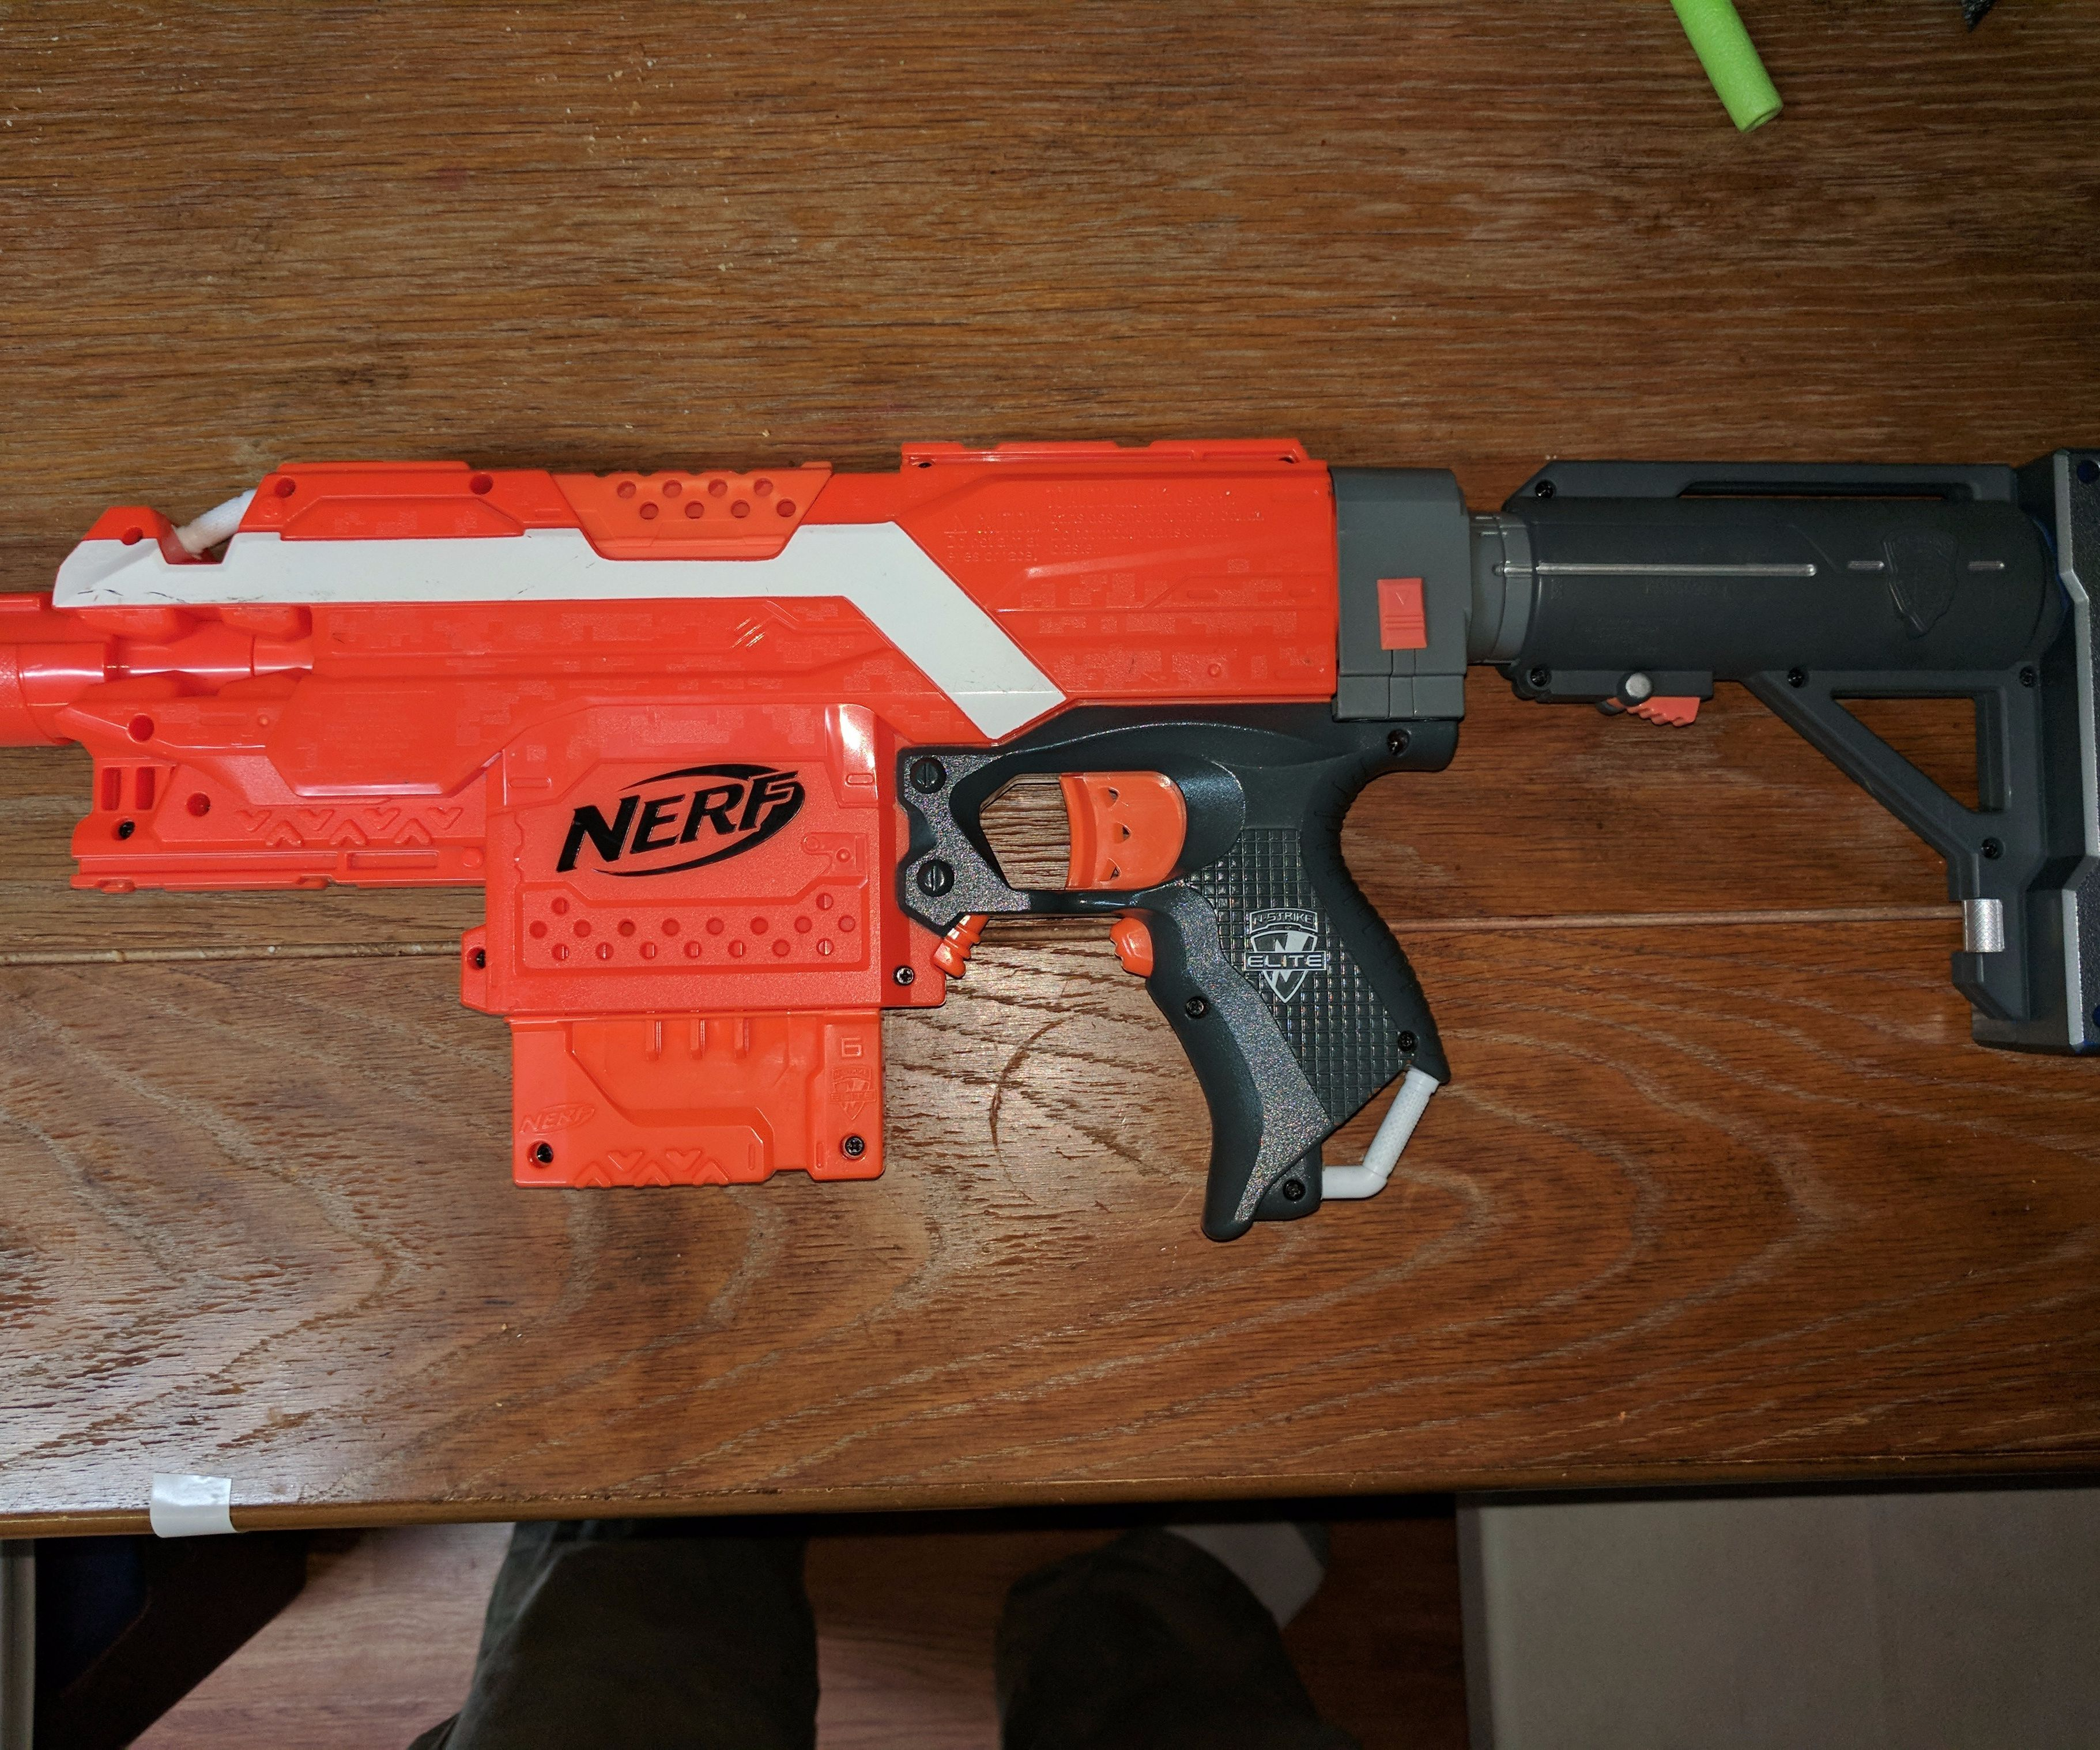 Nerf Stryfe - Disable/remove Locks, Quick and Easy